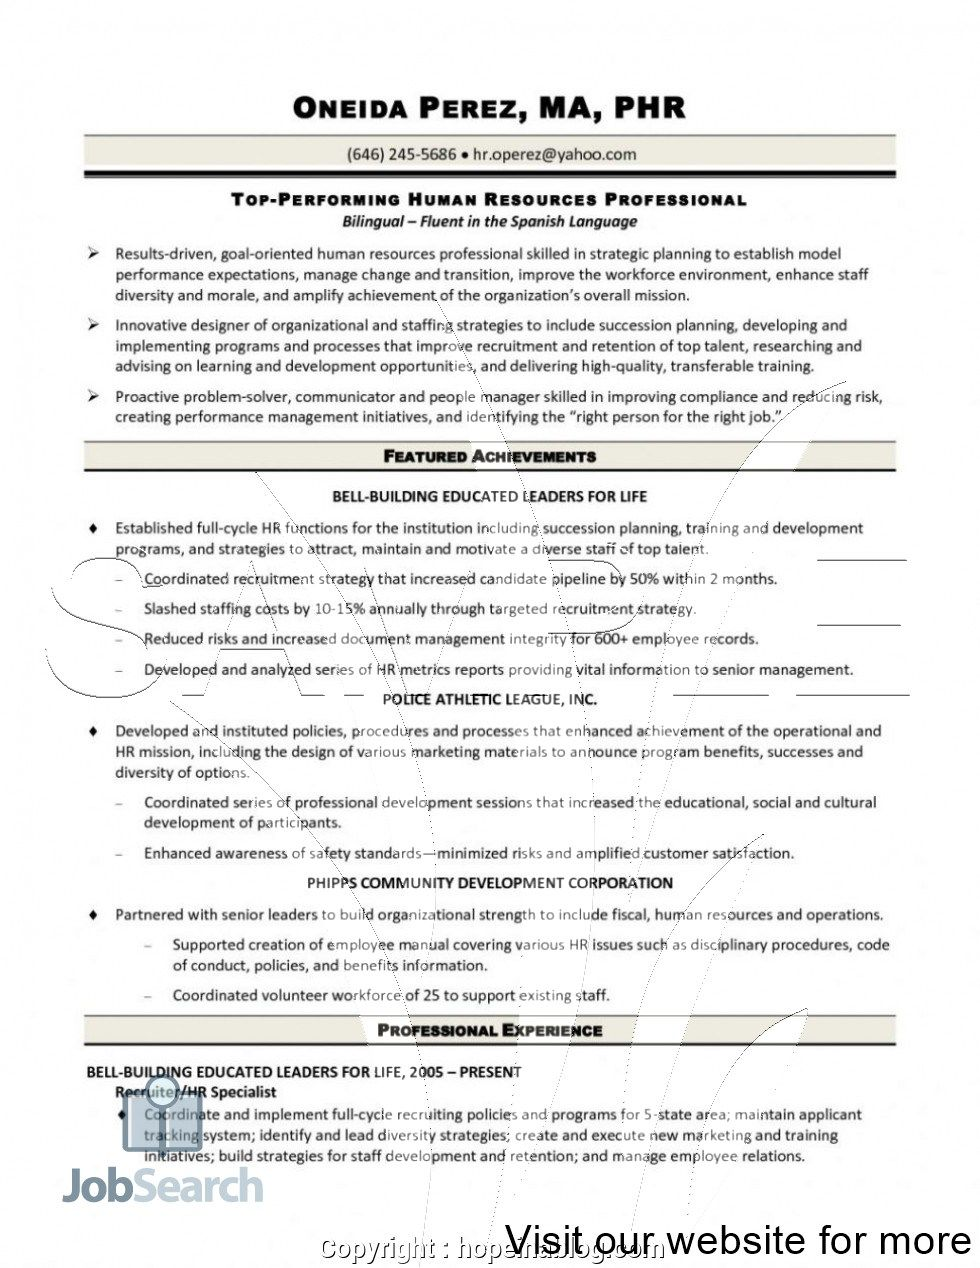 Top Performing Human Resources Professional Career Tips Human Resources Jobs Human Resources Resume Nursing Resume Template Human resources business partner resume templates